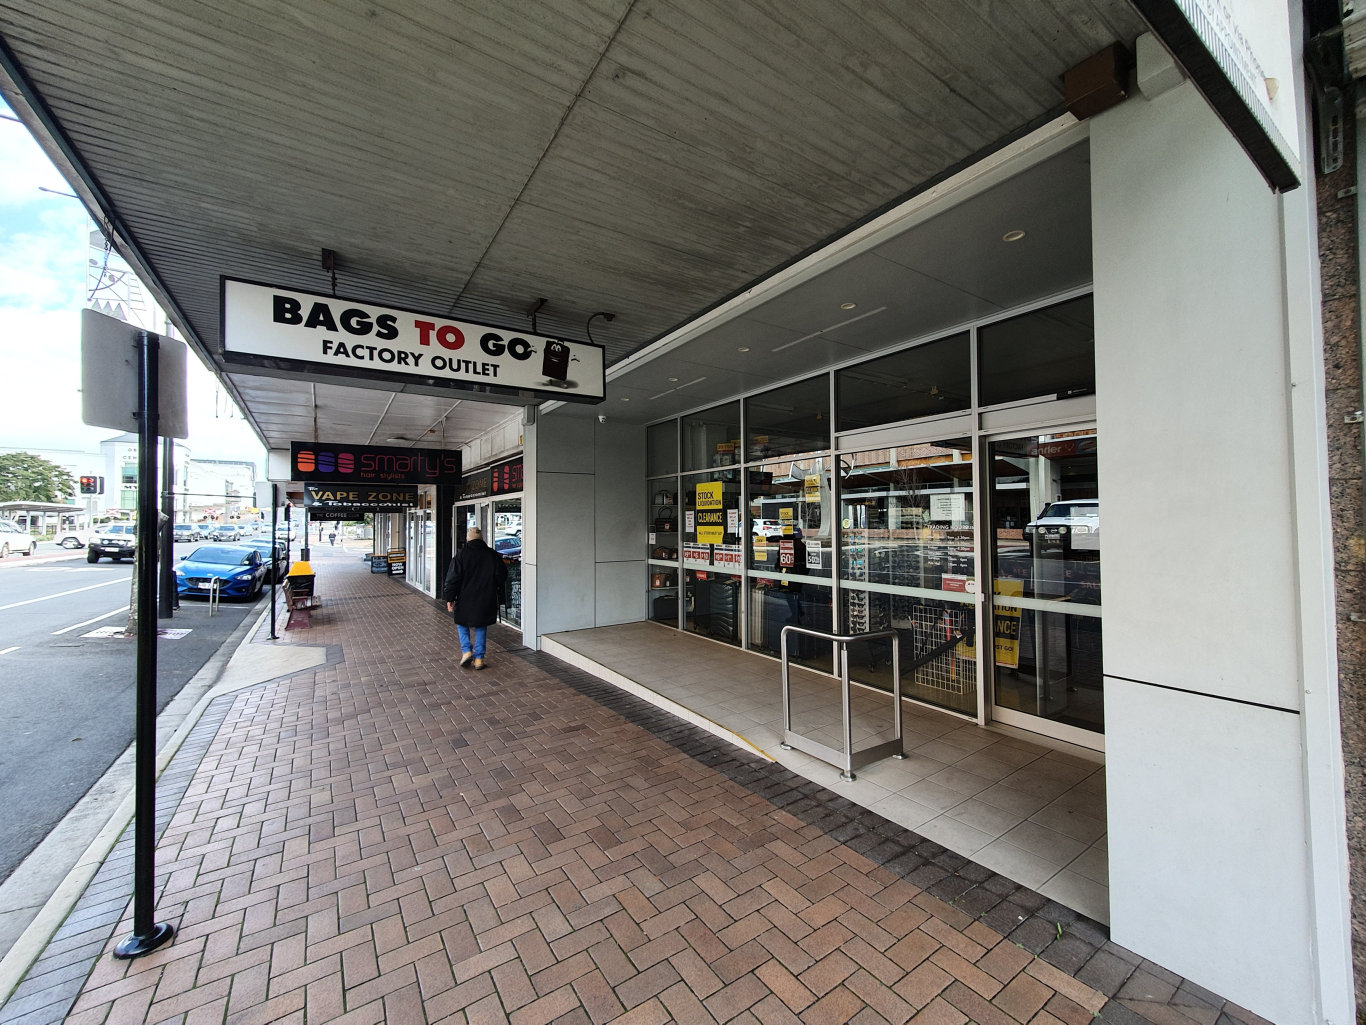 Toowoomba's Bags to Go Factory Outlet is currently closed.